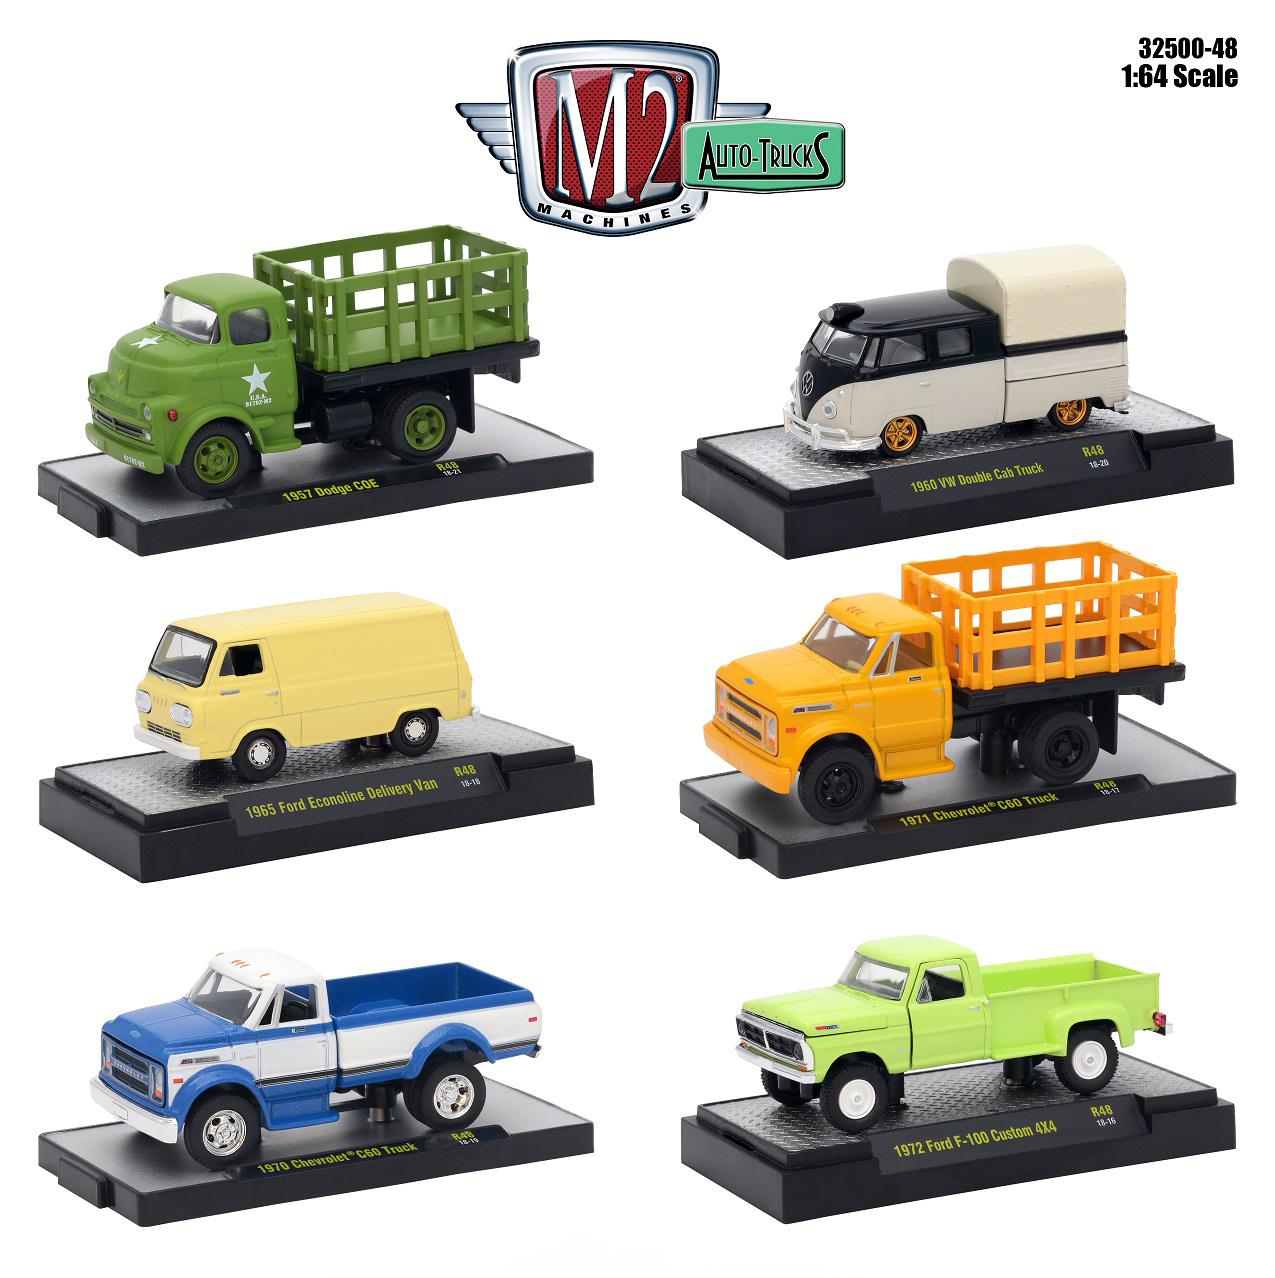 Auto Trucks 6 Piece Set Release 48 IN DISPLAY CASES 1/64 Diecast Model Cars by M2 Machines